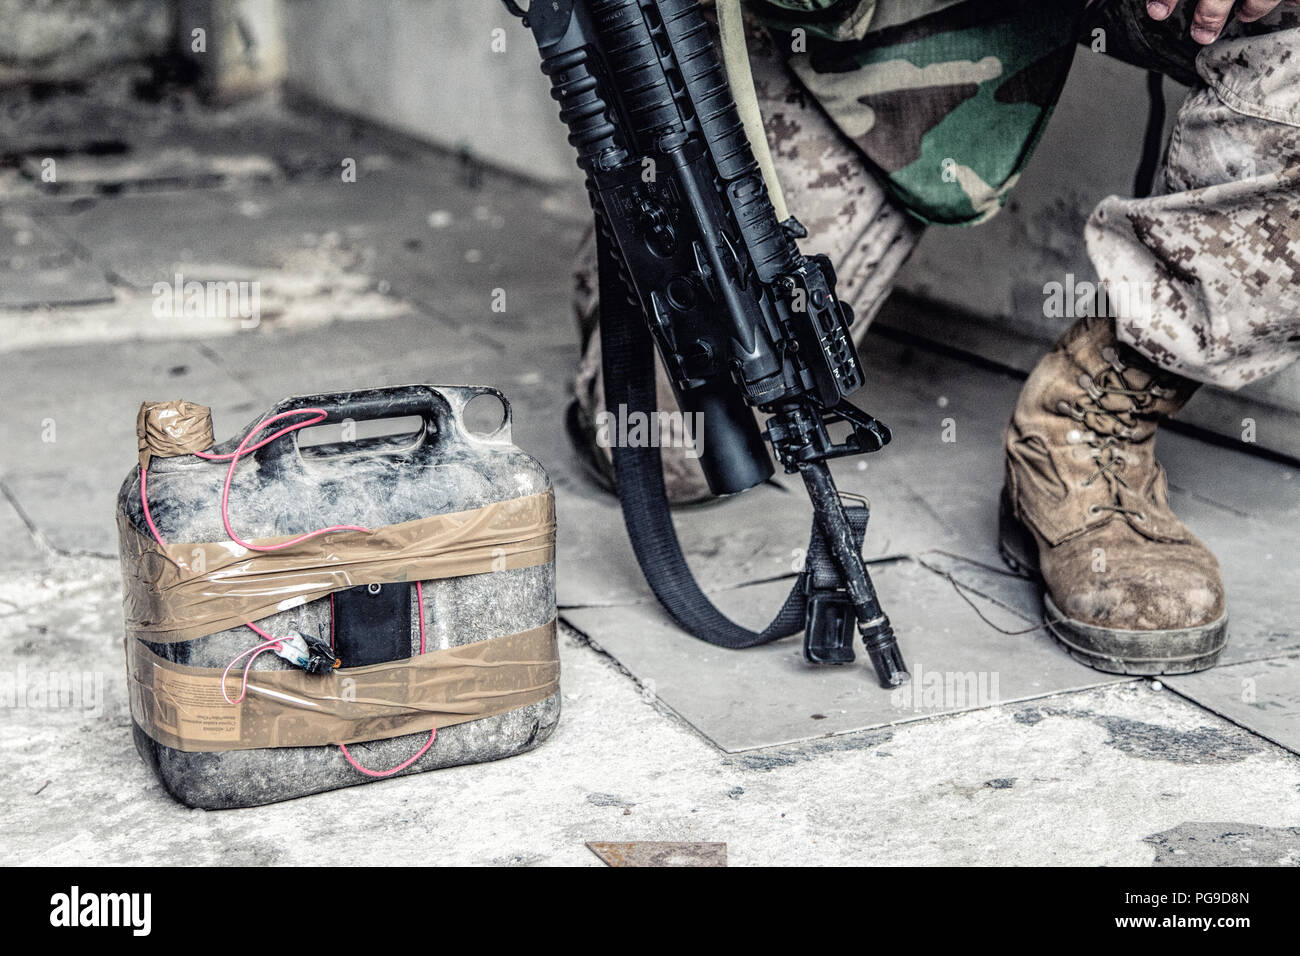 Soldier cuts wire on improvised explosive device - Stock Image